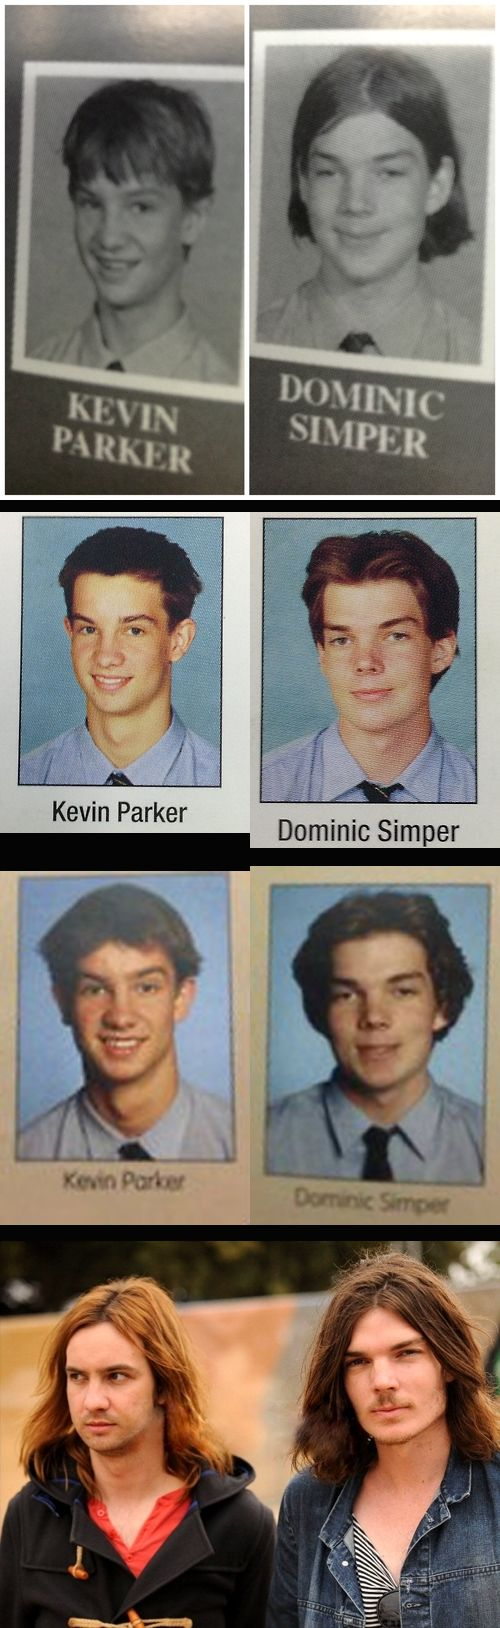 young kevin and young dom